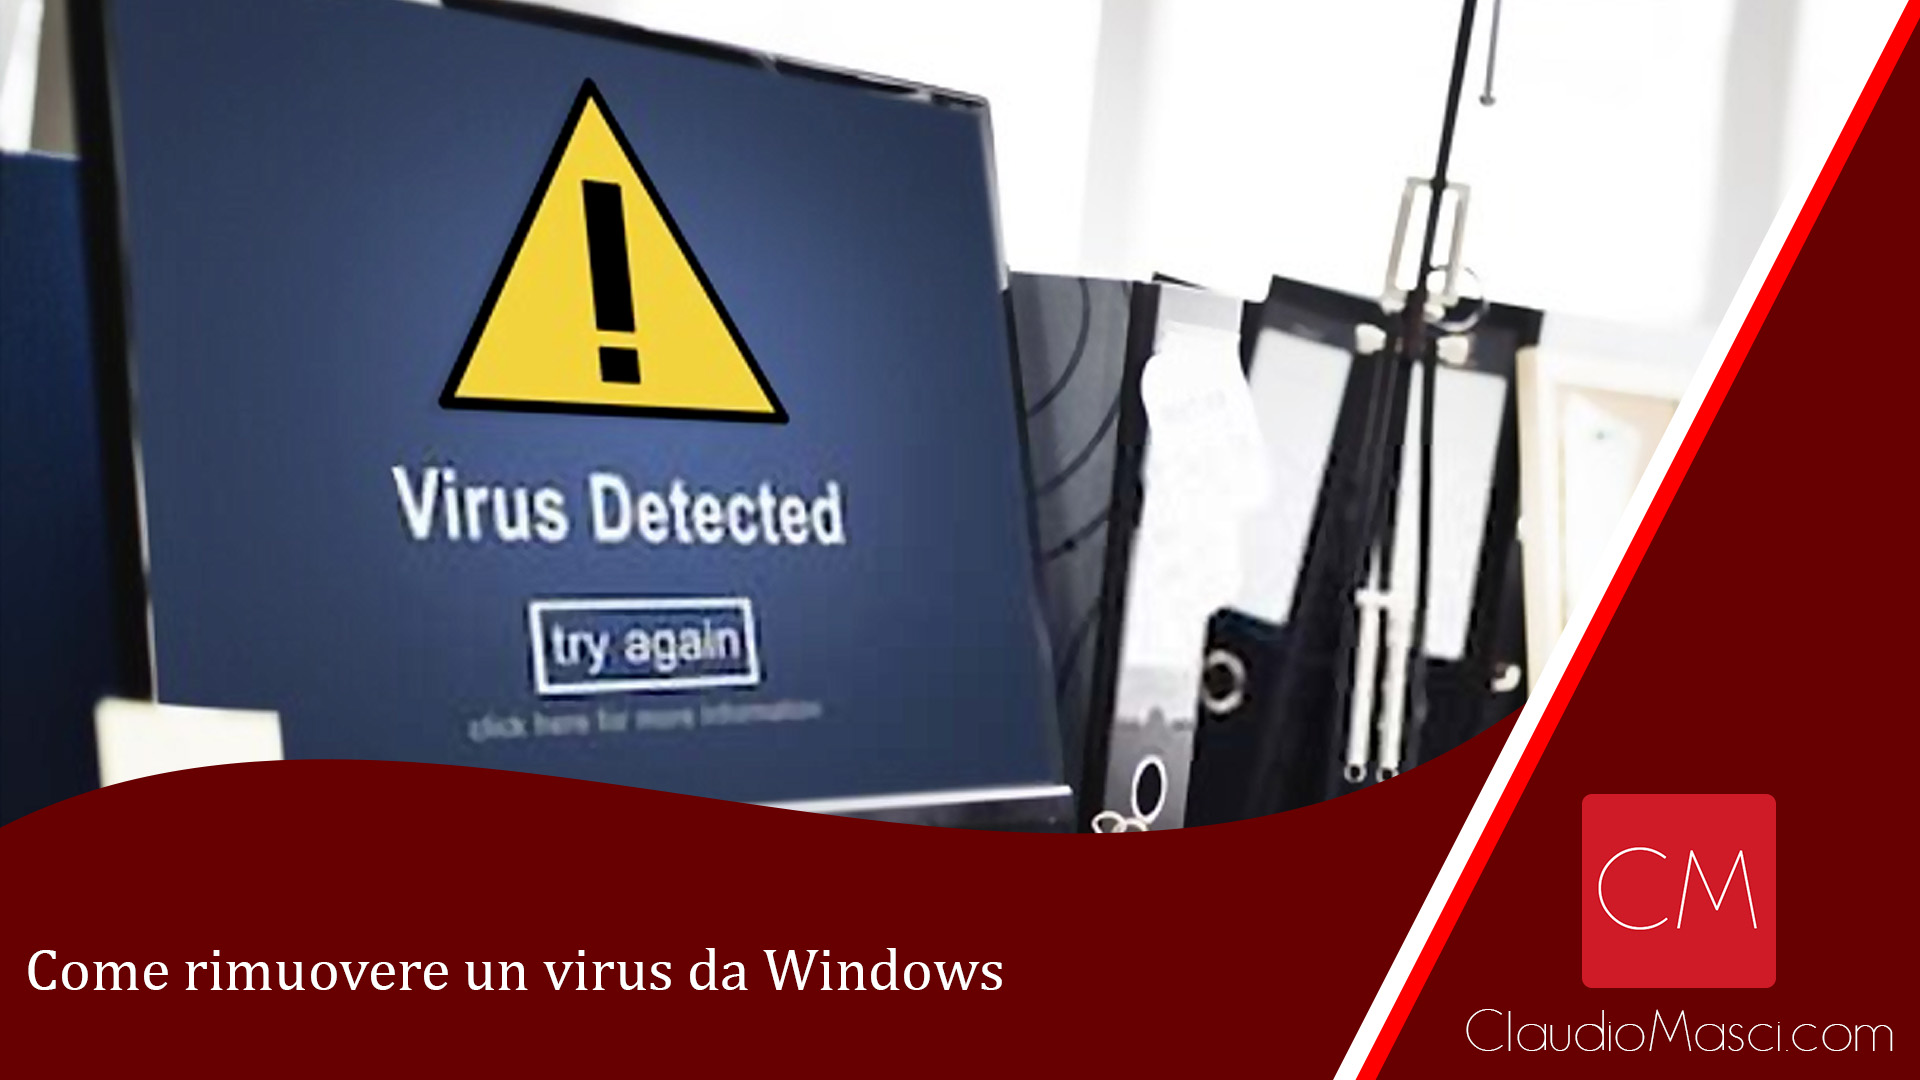 Come rimuovere un virus da Windows